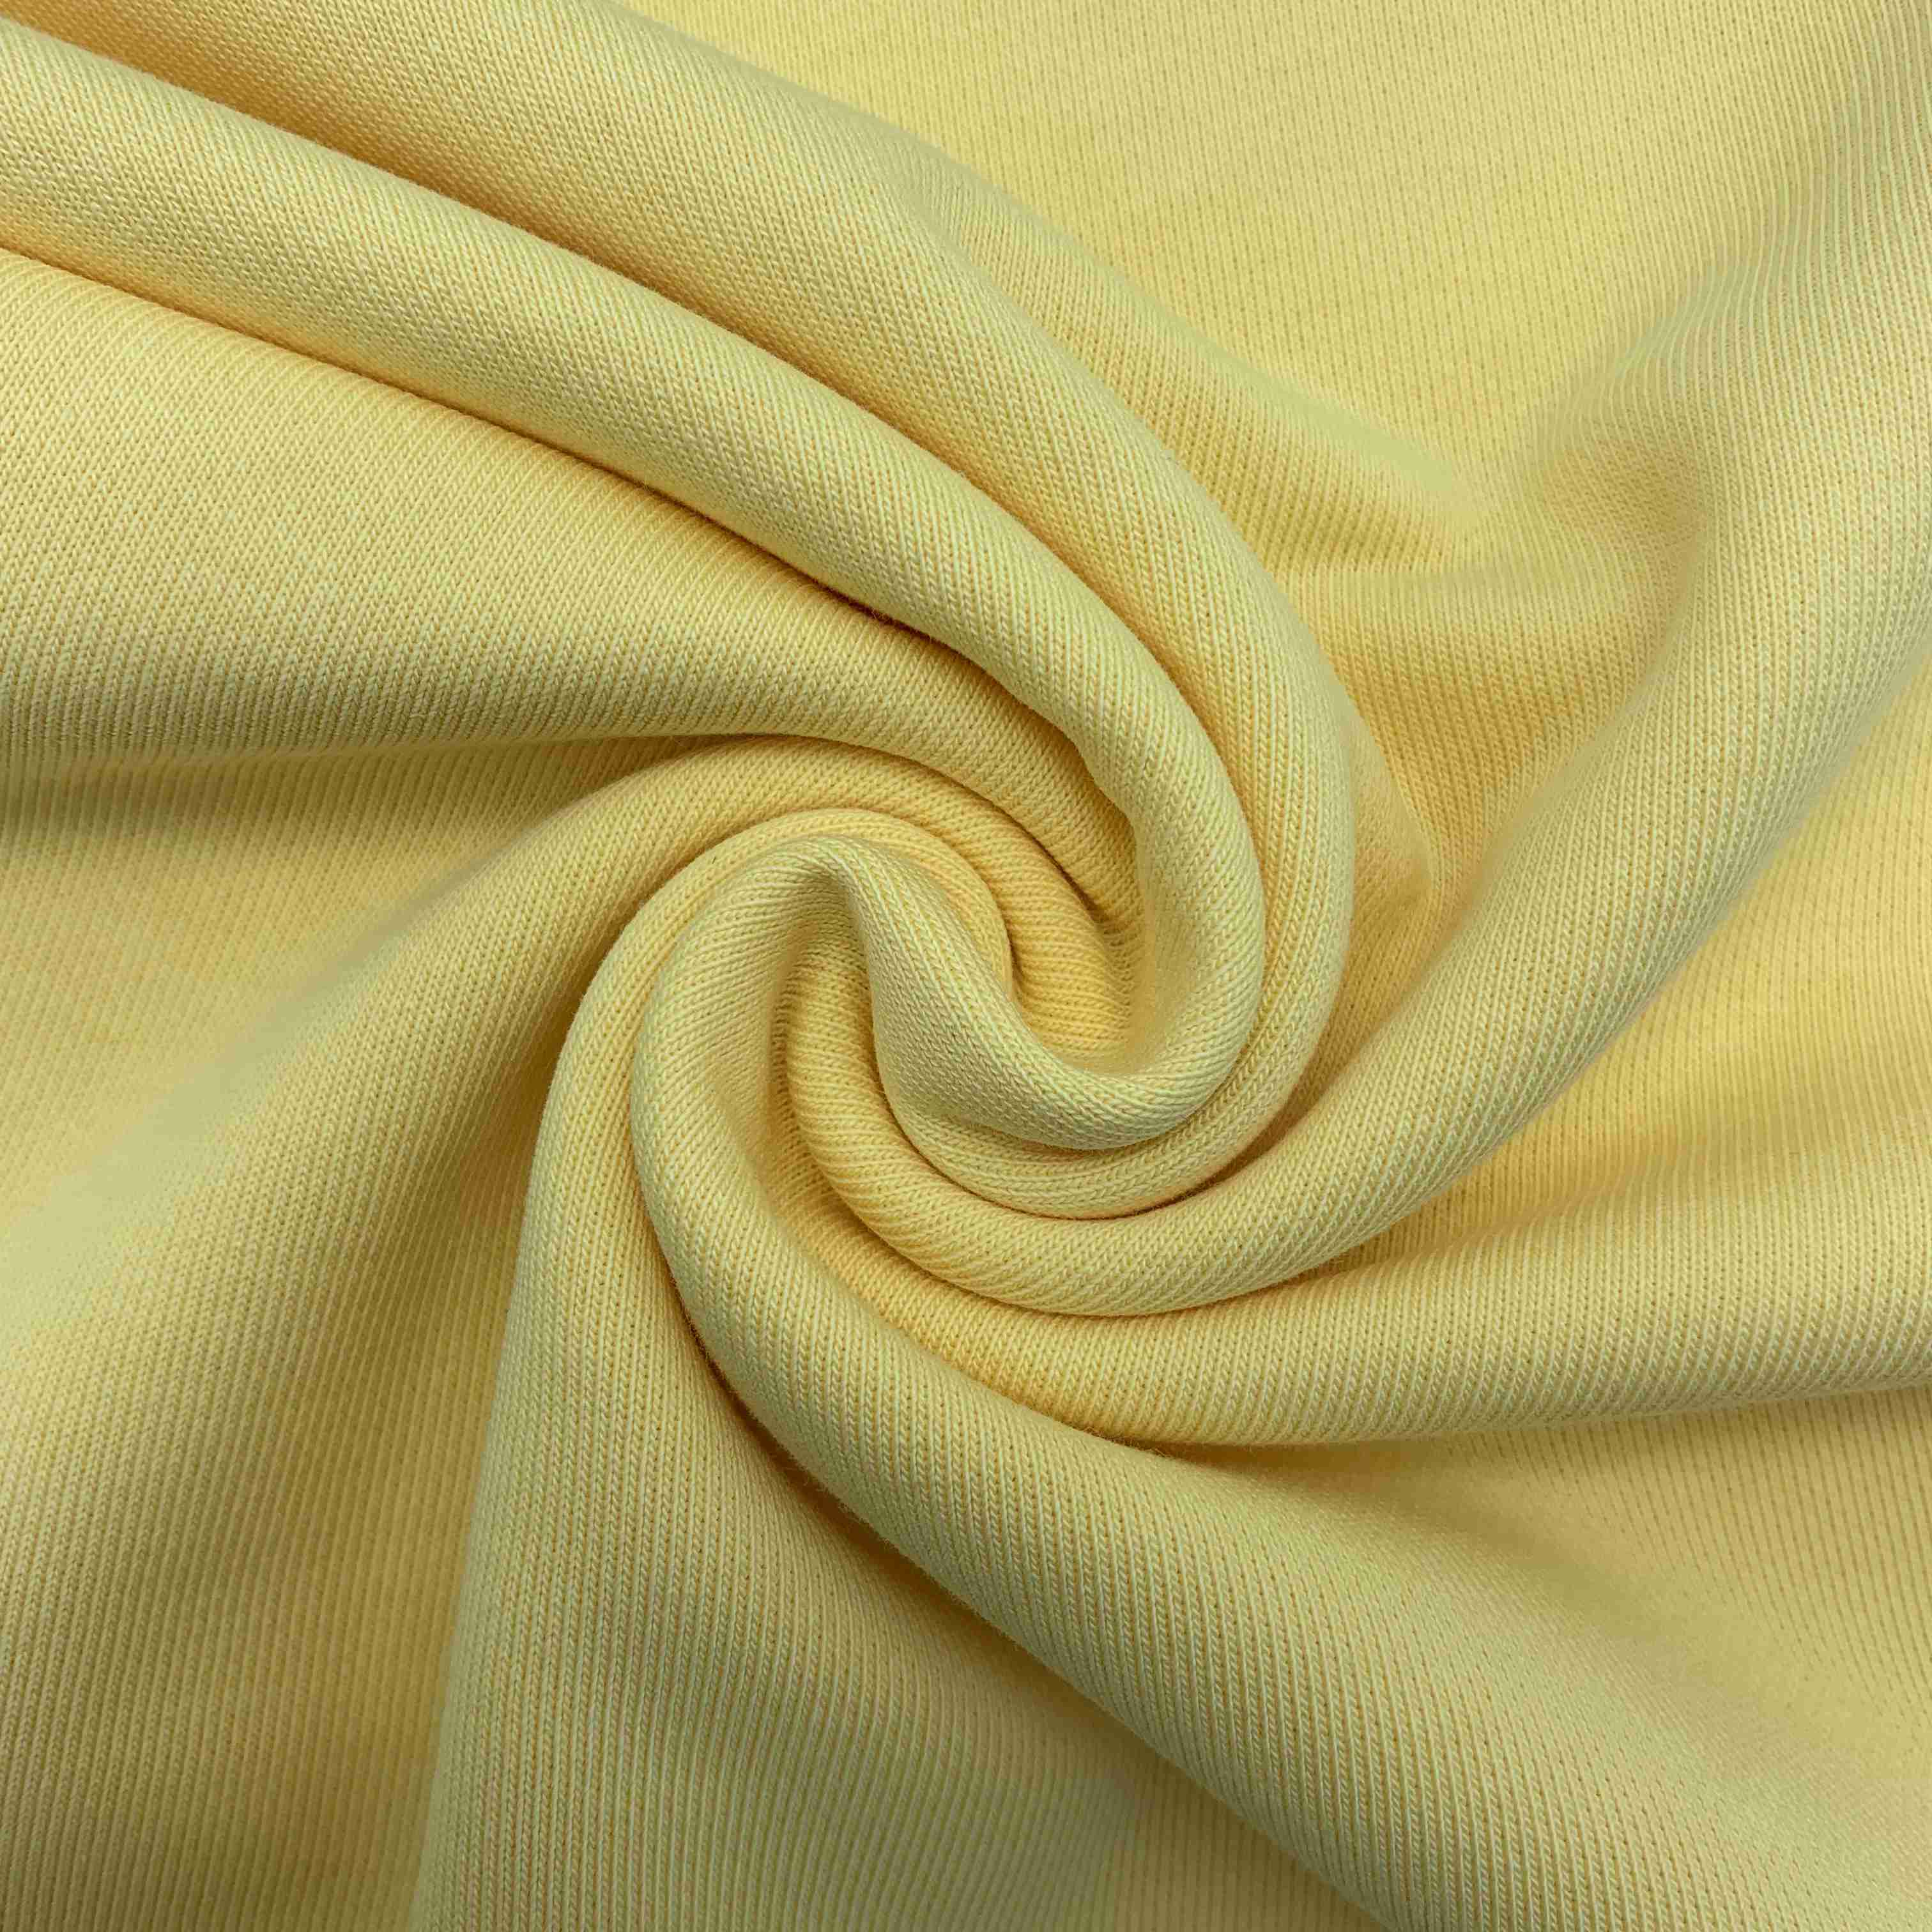 100% cotton spandex french terry cloth fabric for hoodies